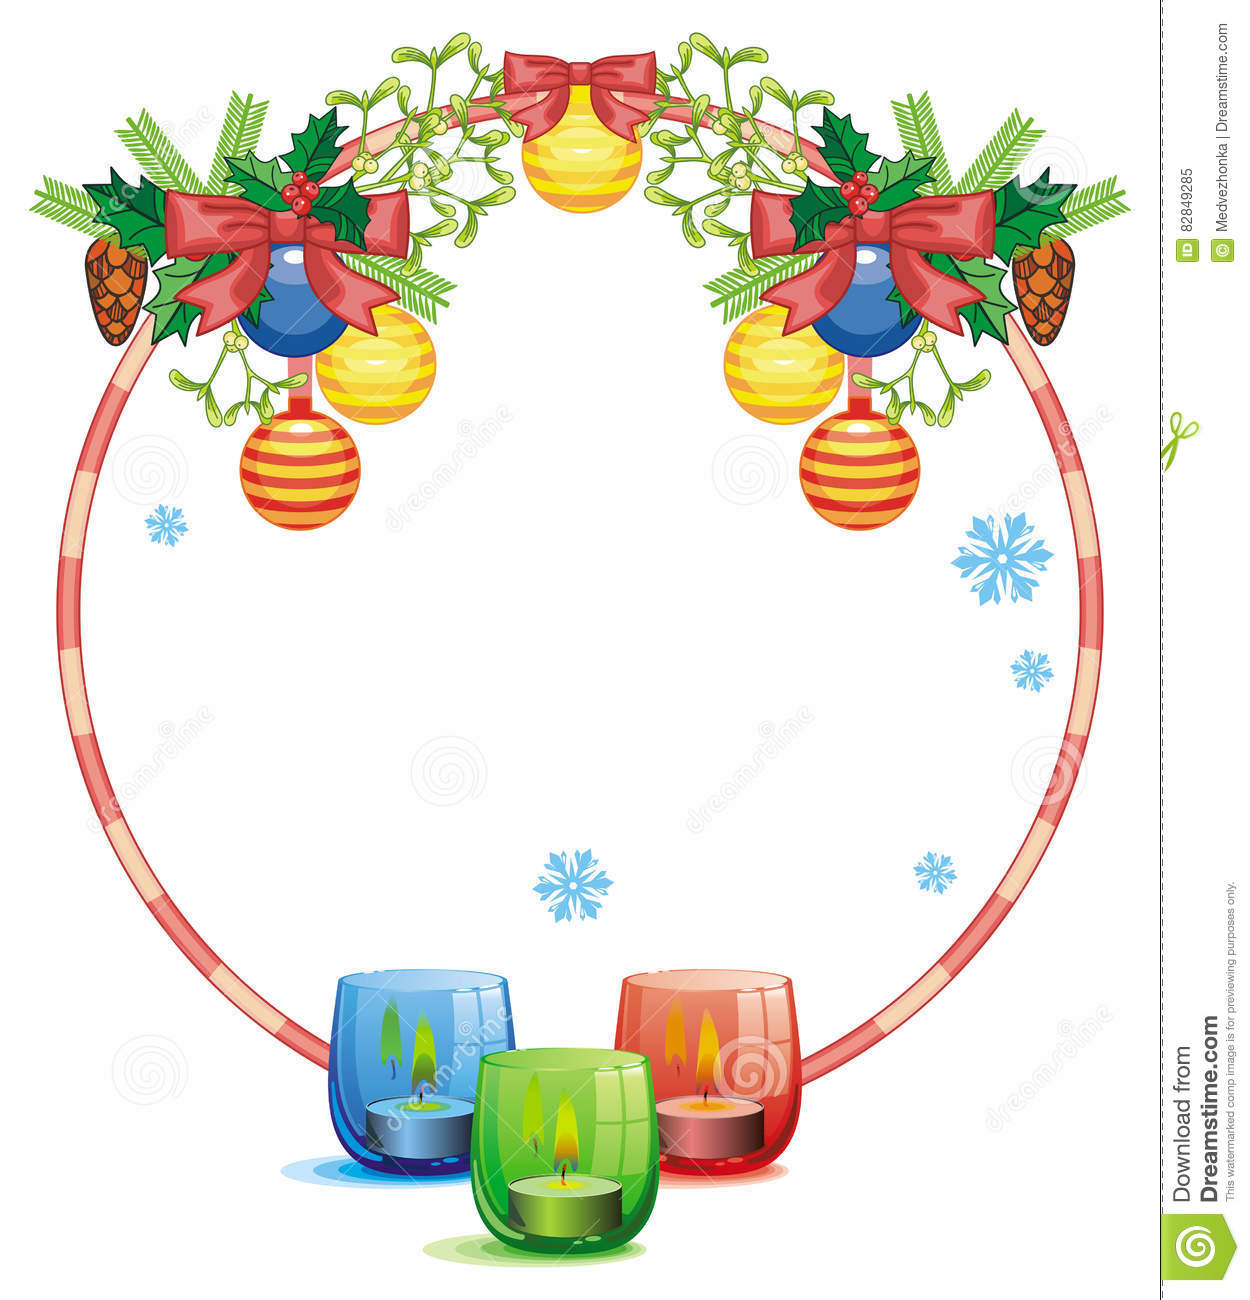 Round Frame In Shape Of Christmas Garland And Lighted Candle Stock ... for lighted candle clip art  587fsj